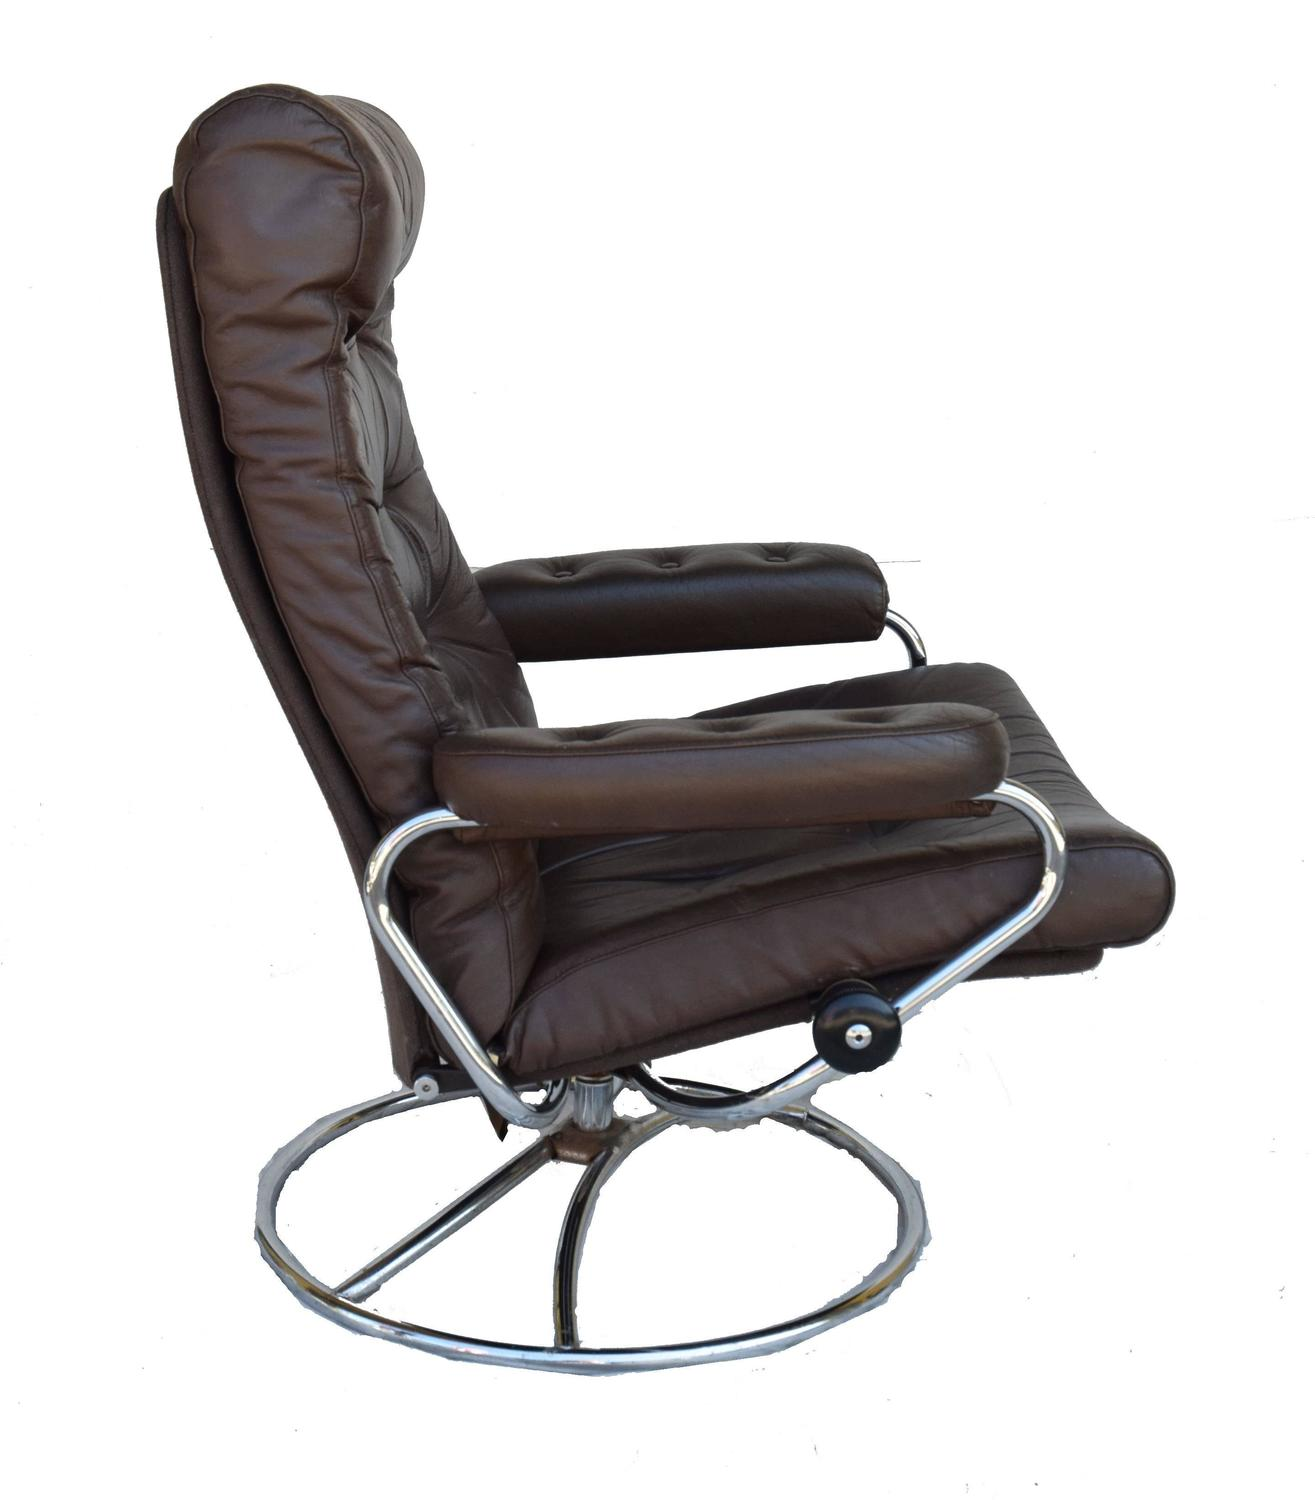 stressless chair sale ikea wicker ekornes and ottoman 1972 for at 1stdibs